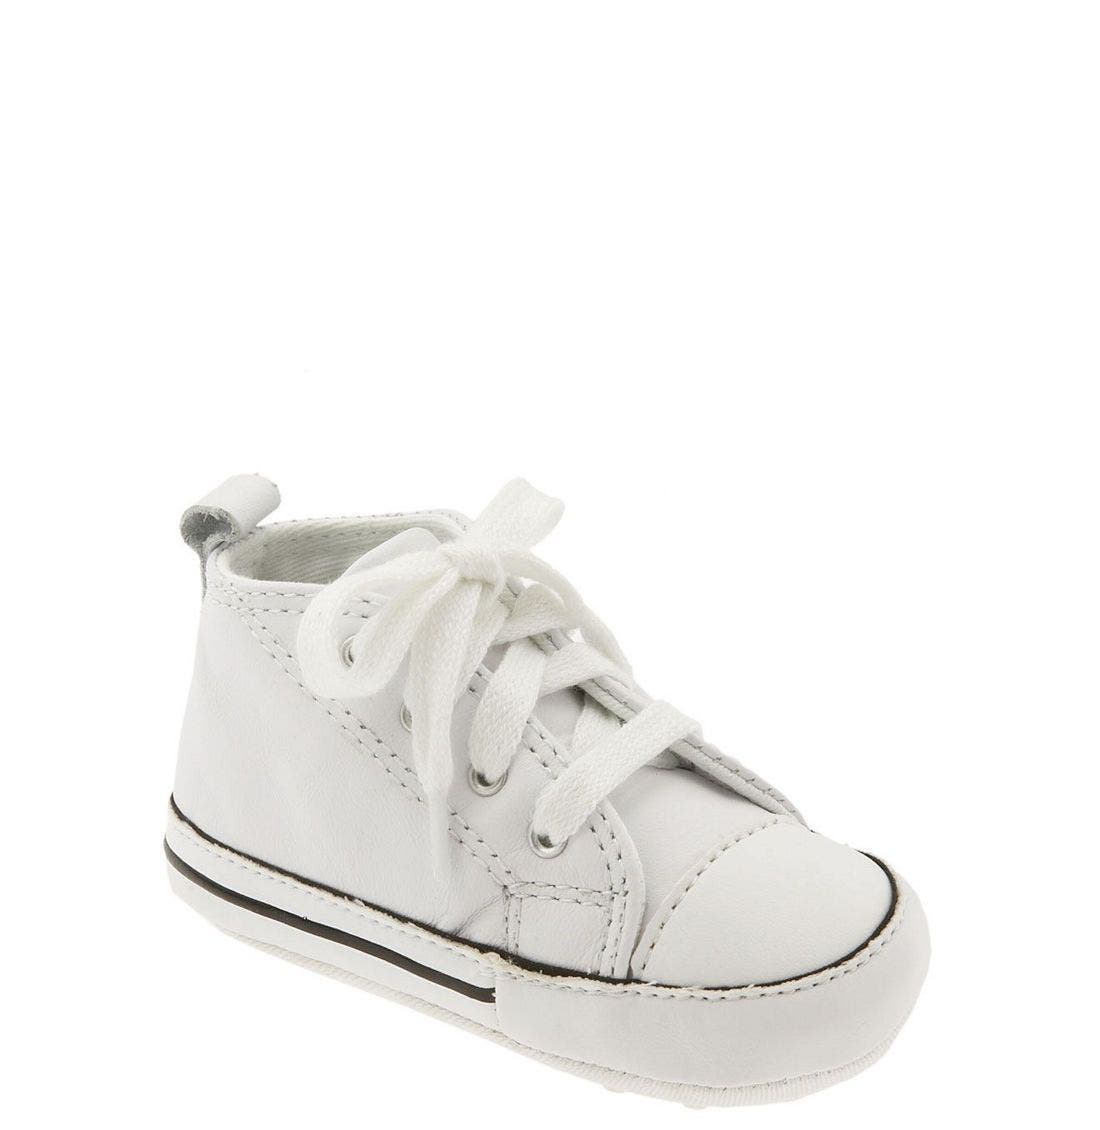 Alternate Image 1 Selected - Converse Chuck Taylor® Crib Sneaker (Baby)